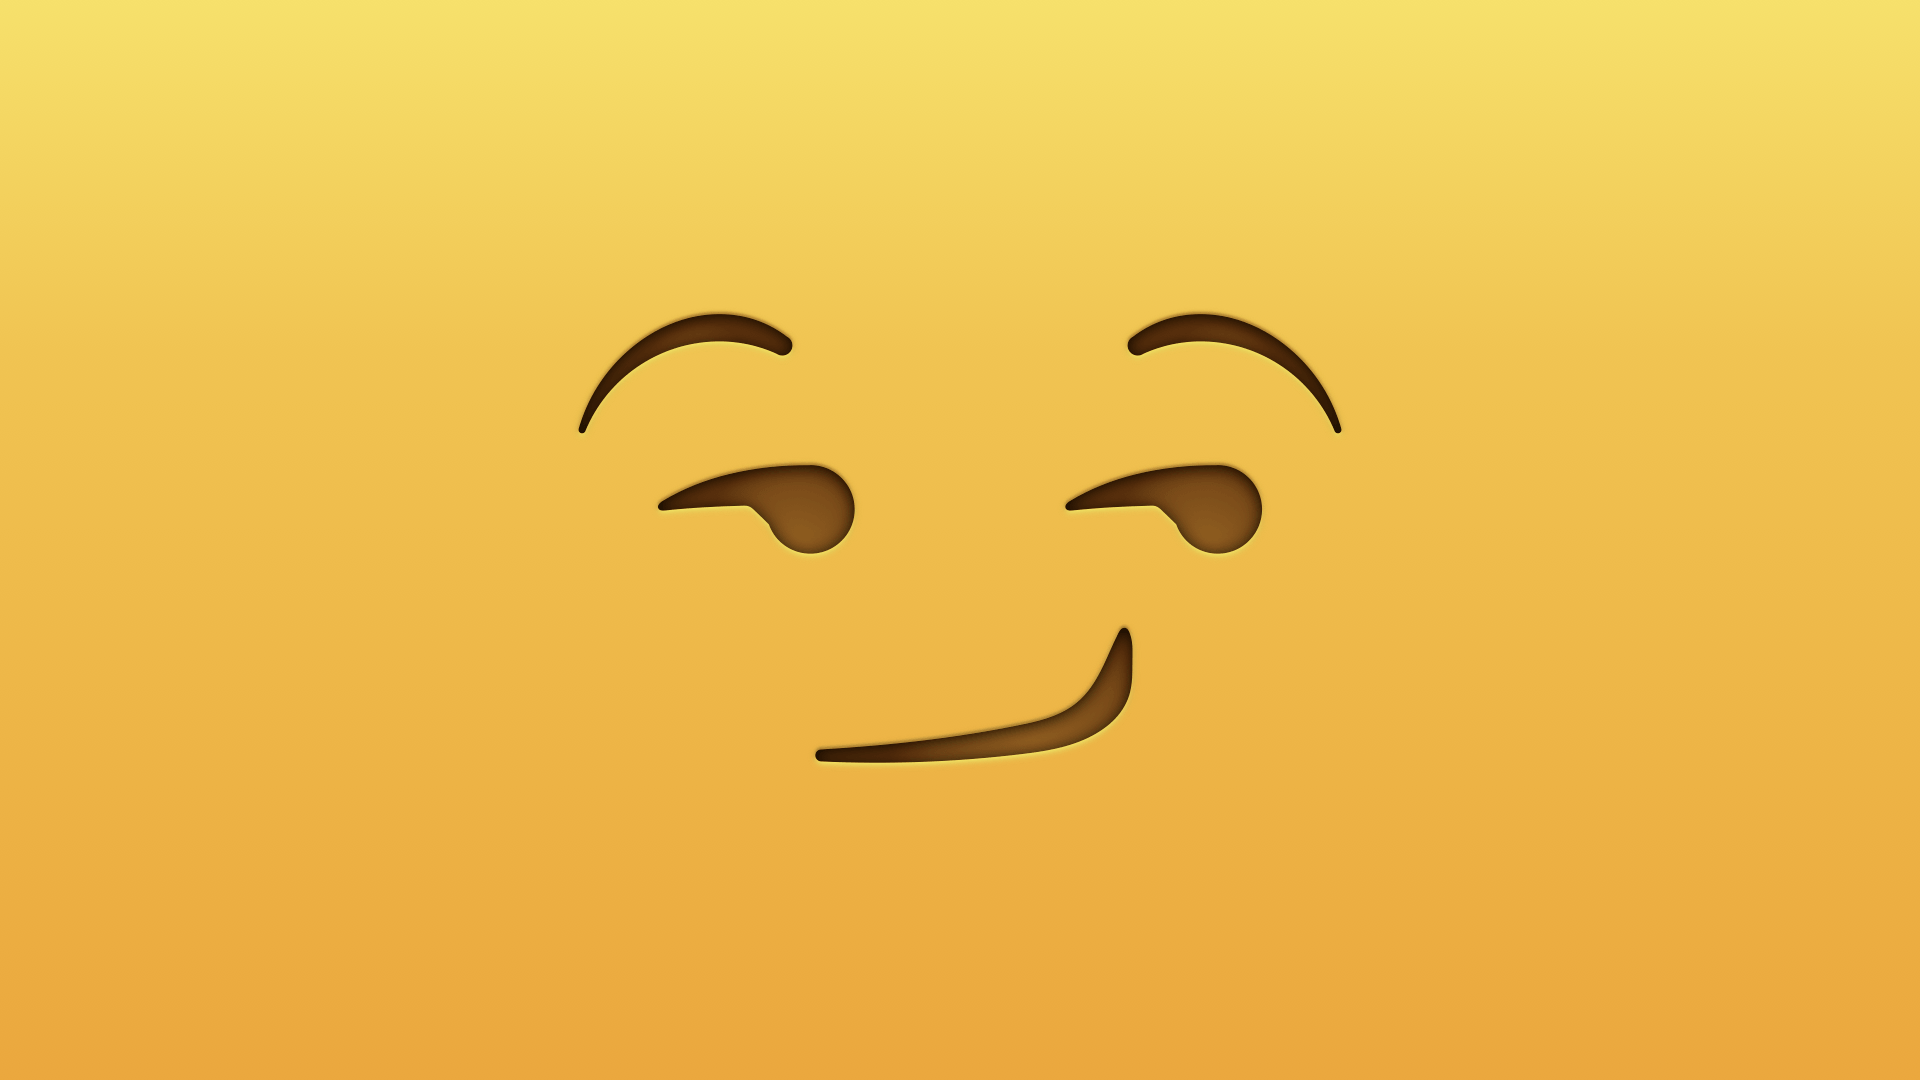 Emoji Desktop Wallpapers Top Free Emoji Desktop